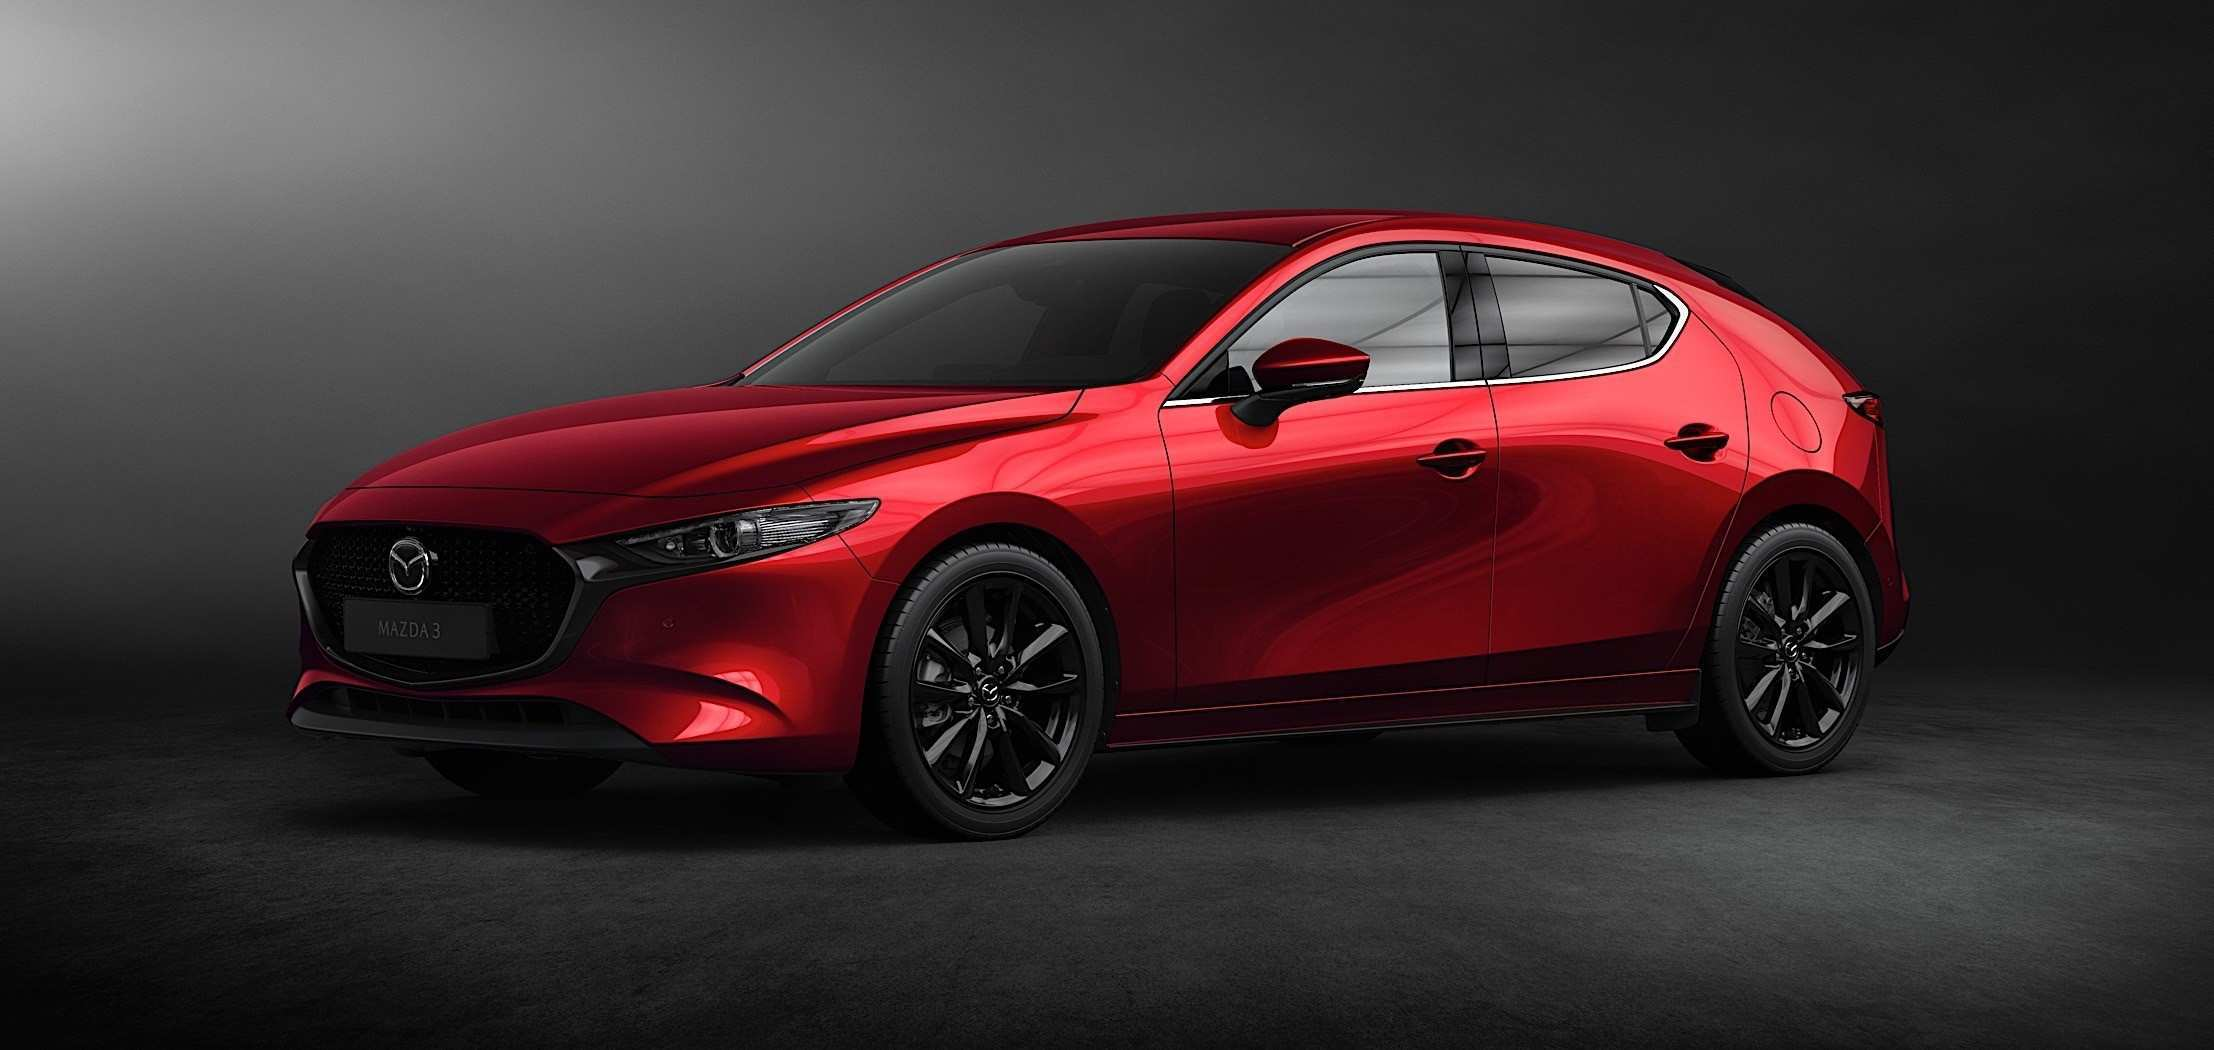 90 New Mazda Sedan 2020 Price with Mazda Sedan 2020